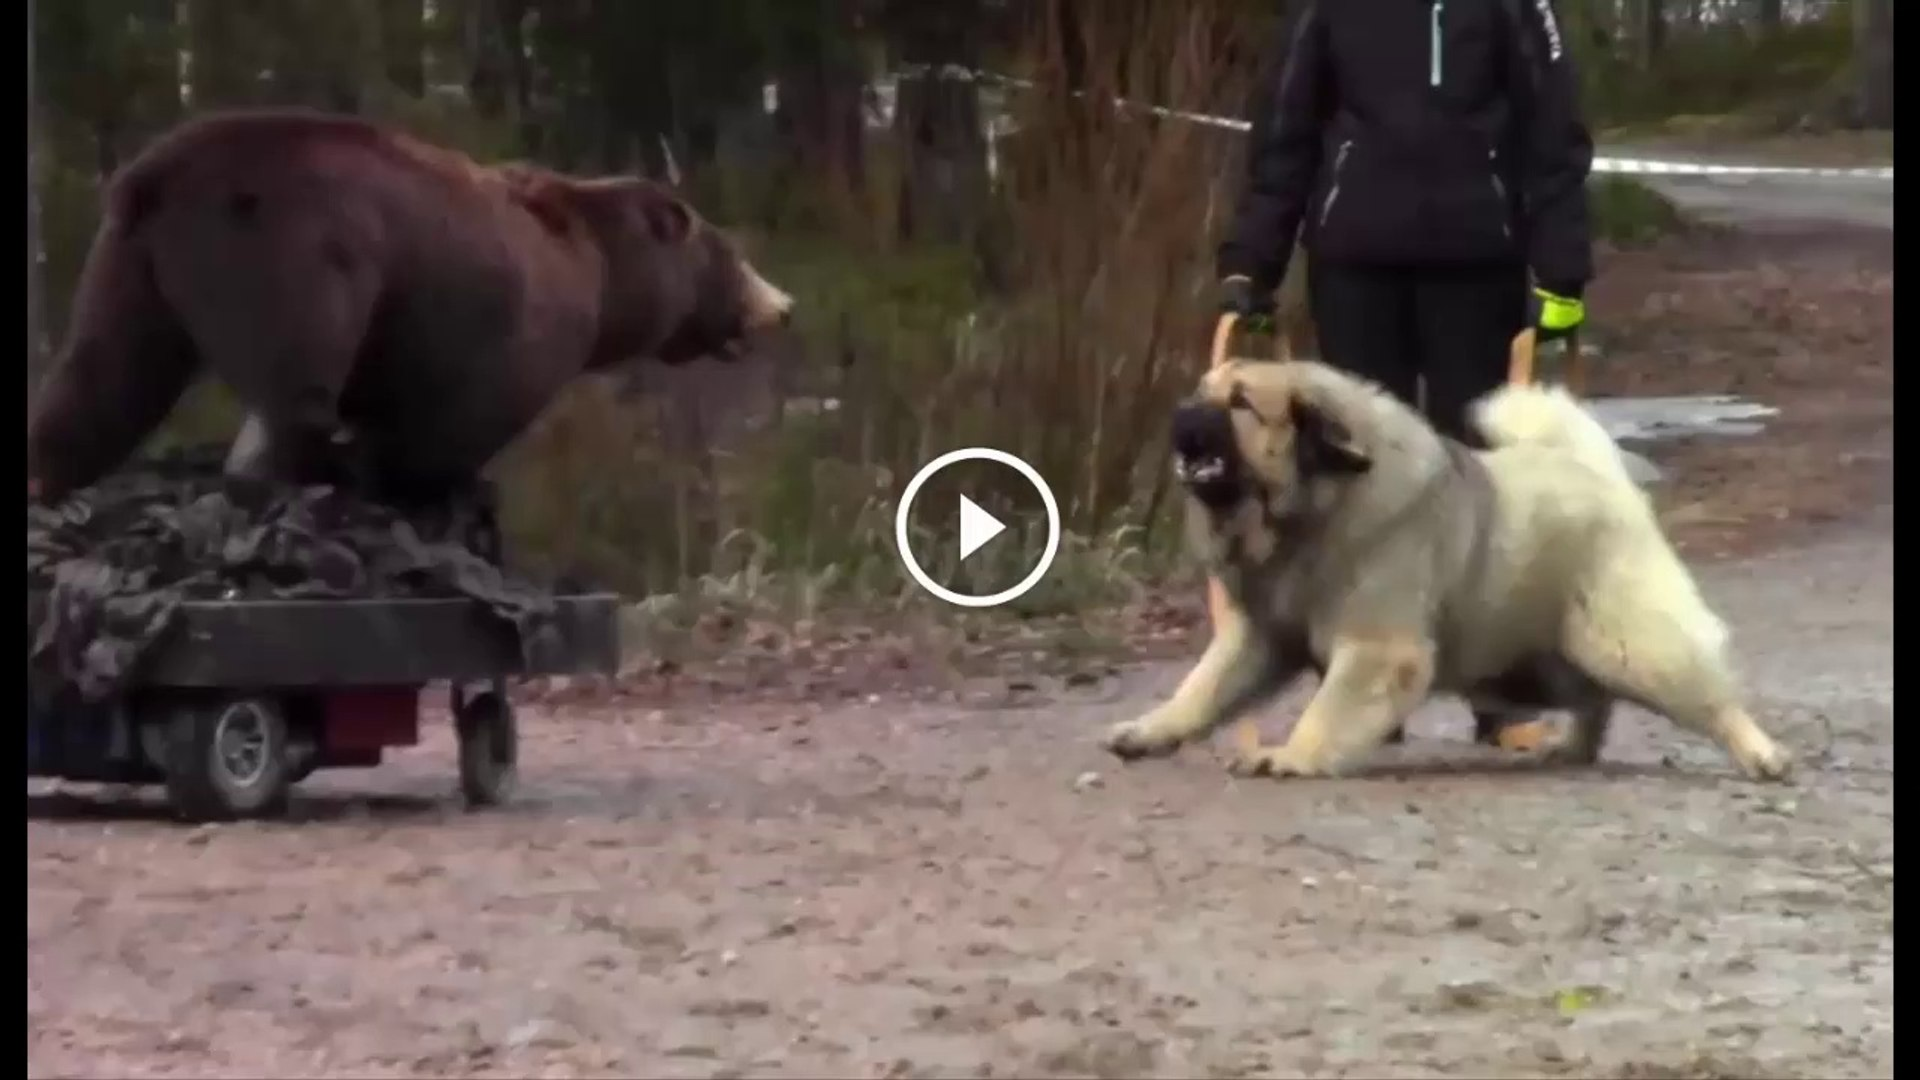 KAFKAS COBAN KOPEGi vs AYI - CAUCASiAN SHEPHERD DOG vs BEAR